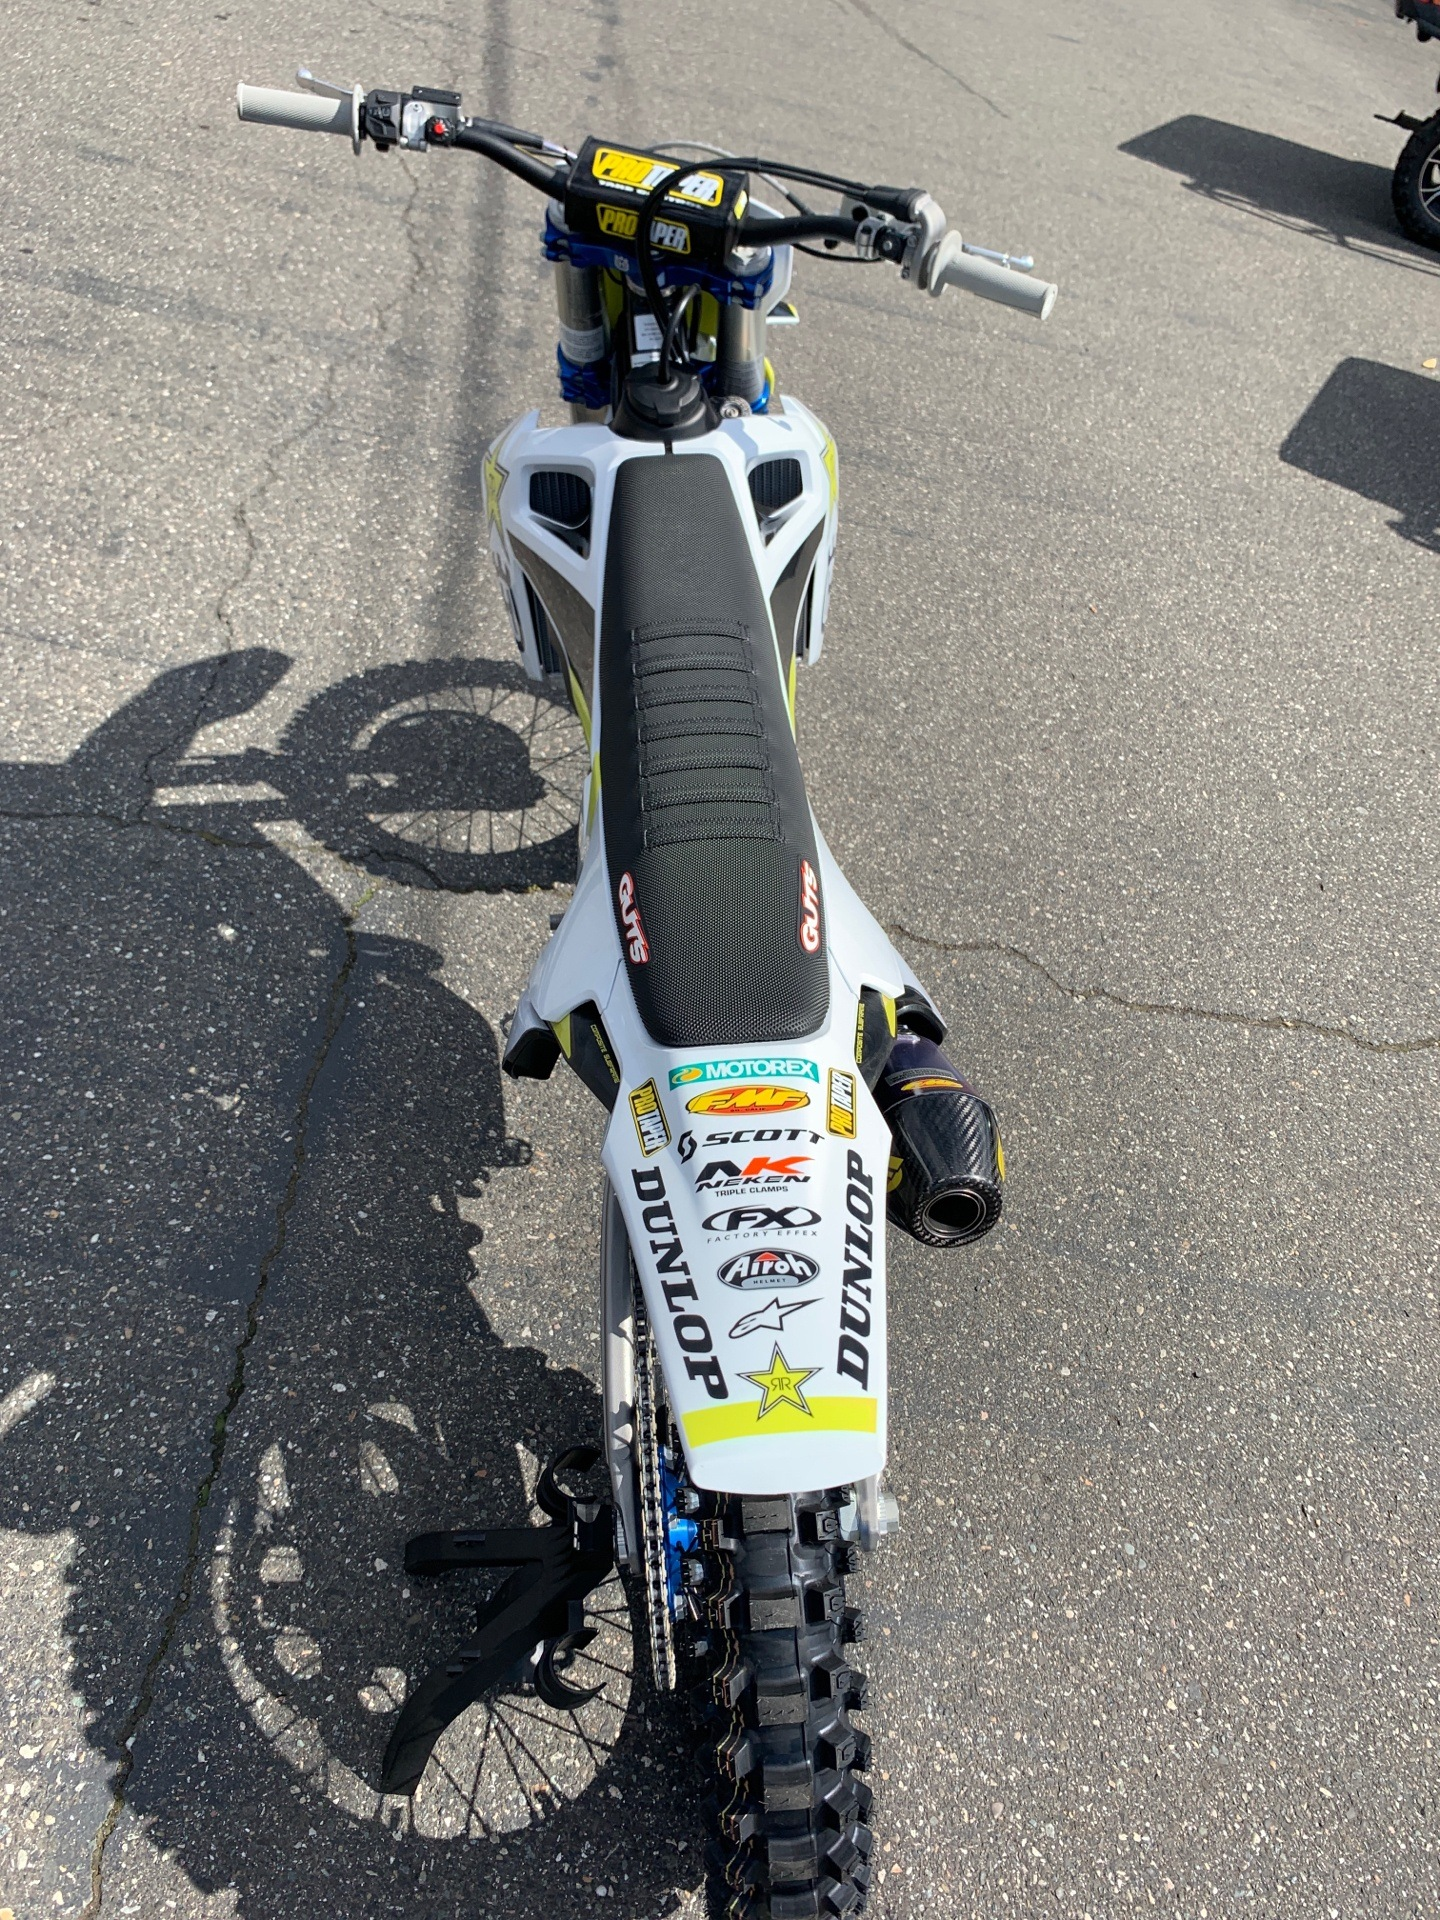 2020 Husqvarna FC 450 Rockstar Edition in Bellingham, Washington - Photo 8